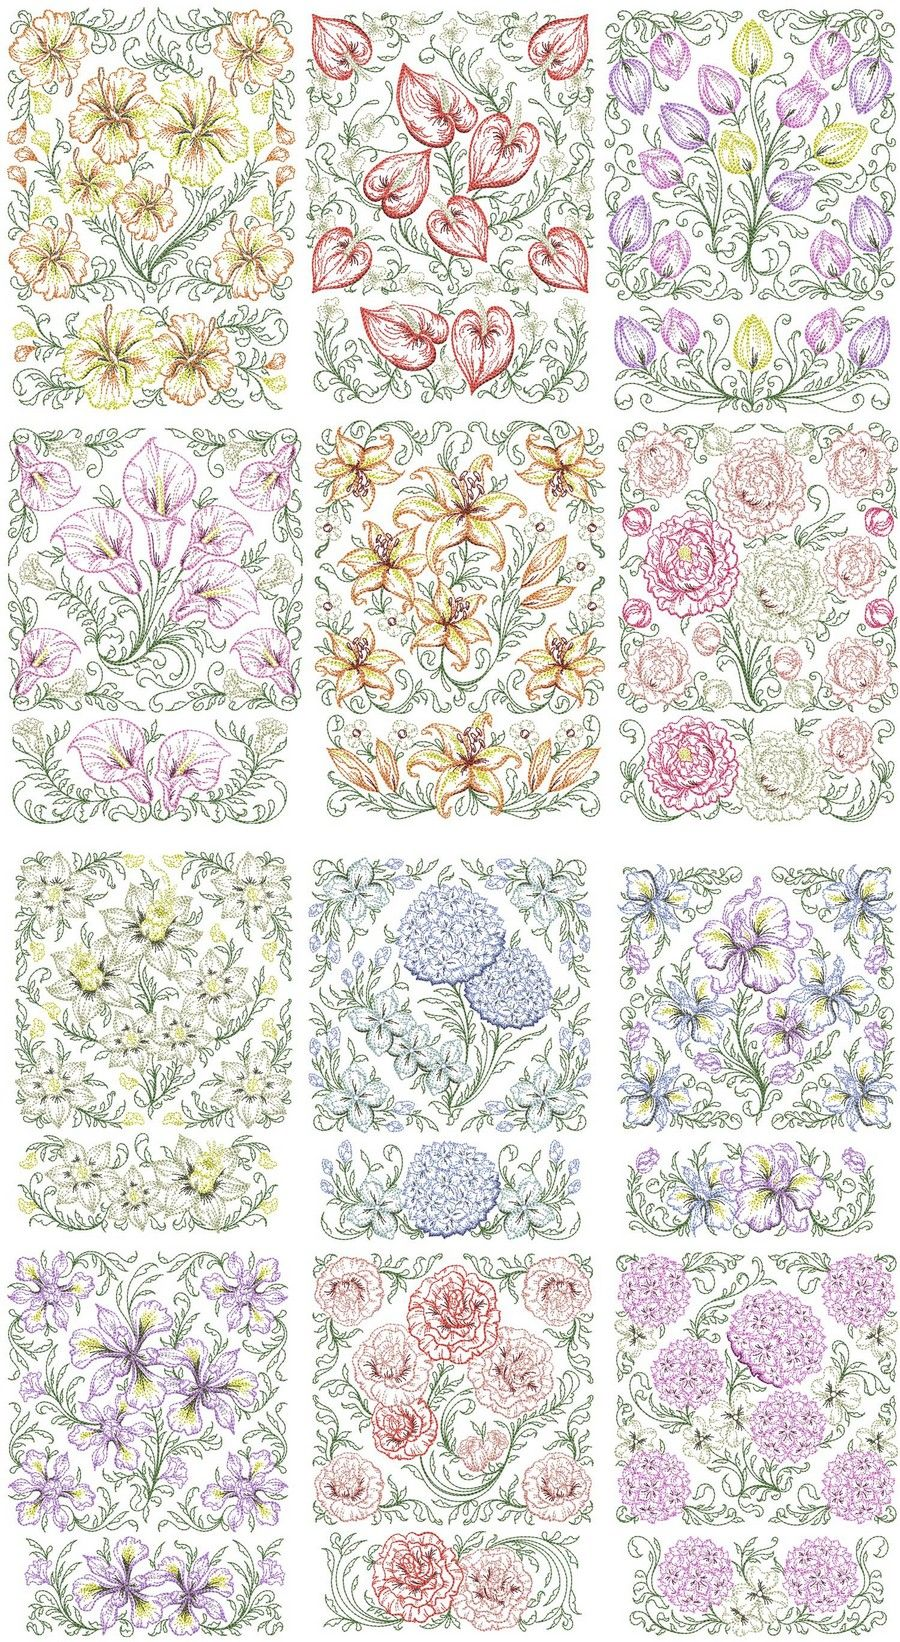 Timeless spring quilt set machine embroidery designs by sew swell